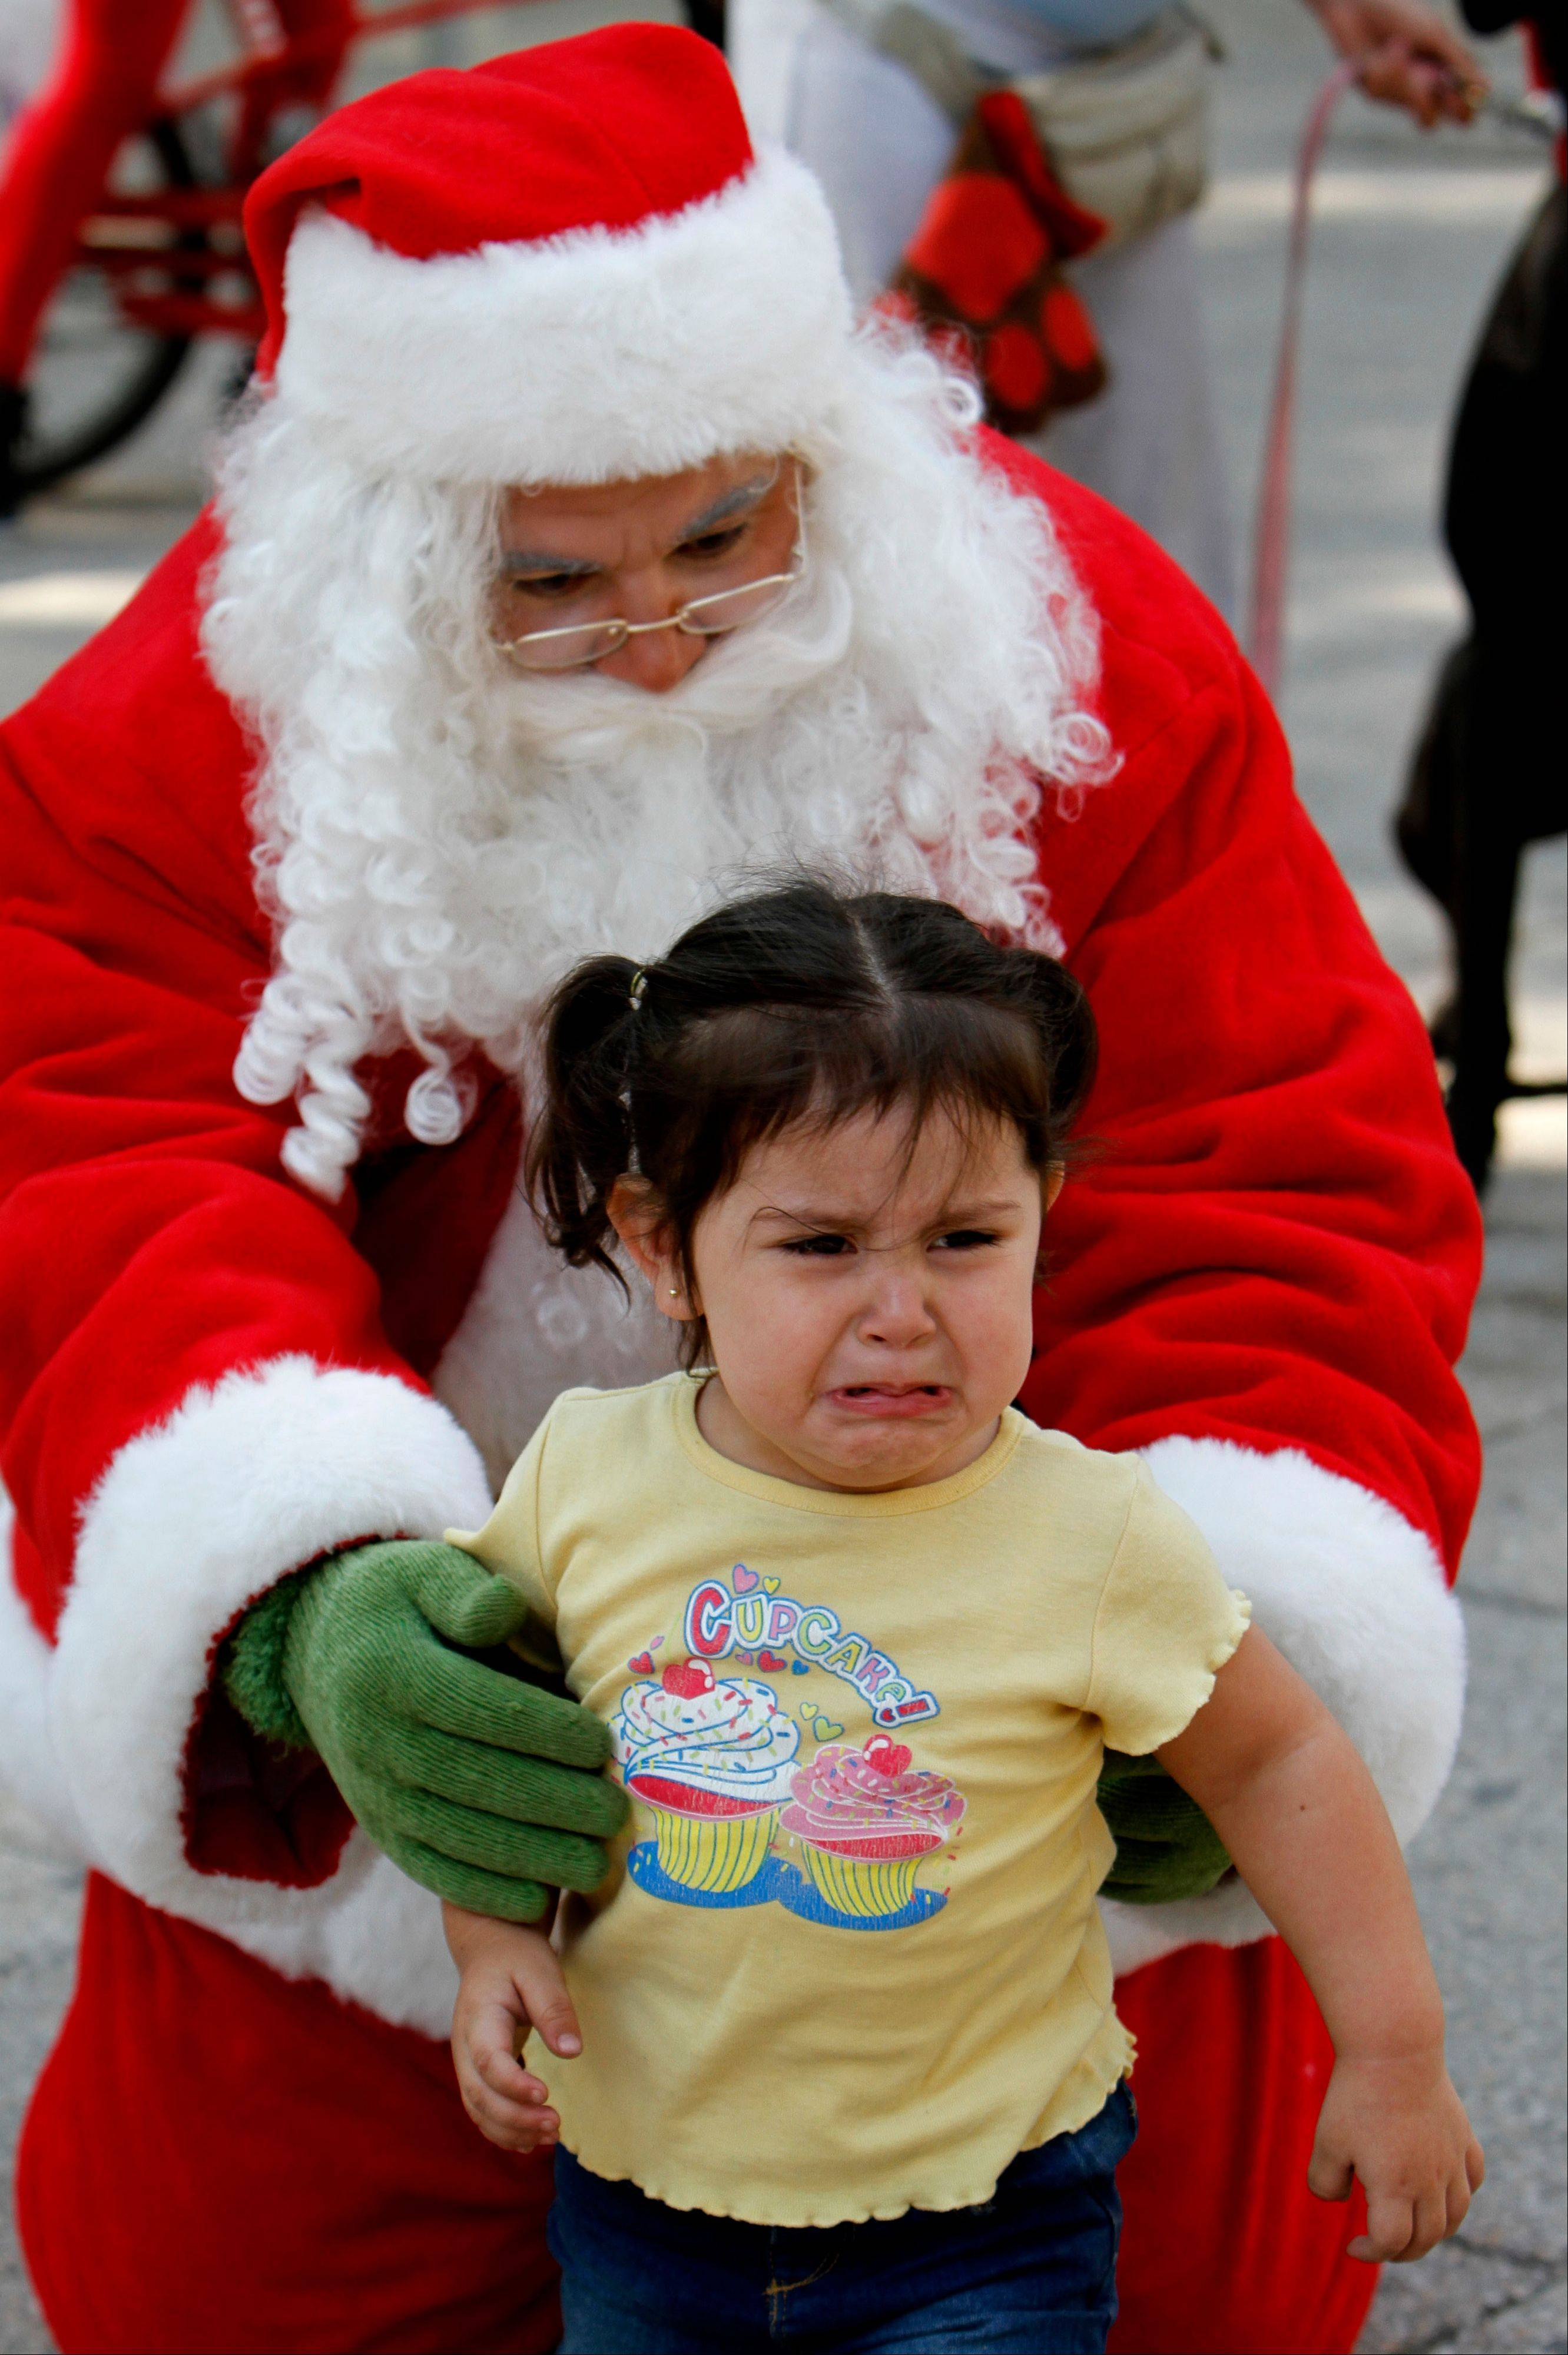 A girl cries as she poses for pictures with a man disguised as Santa Claus in Mexico City, Sunday, Dec. 23, 2012.